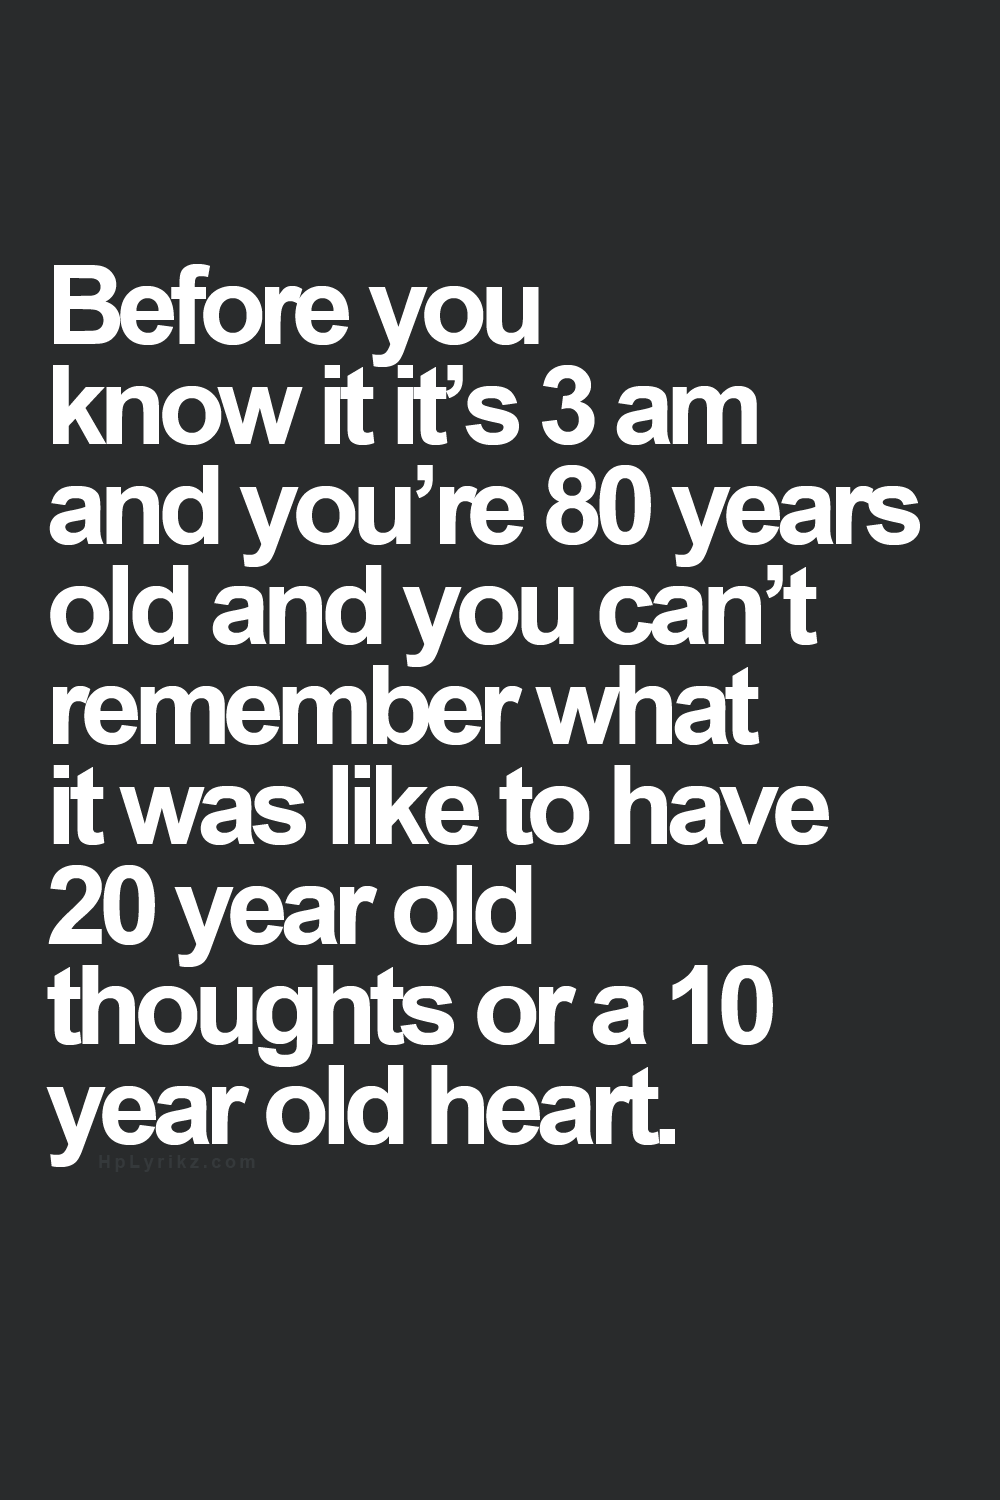 Before you know it its 3 am re 80 years old t remember what it was like to have 20 year old thoughts or a 10 year old heart